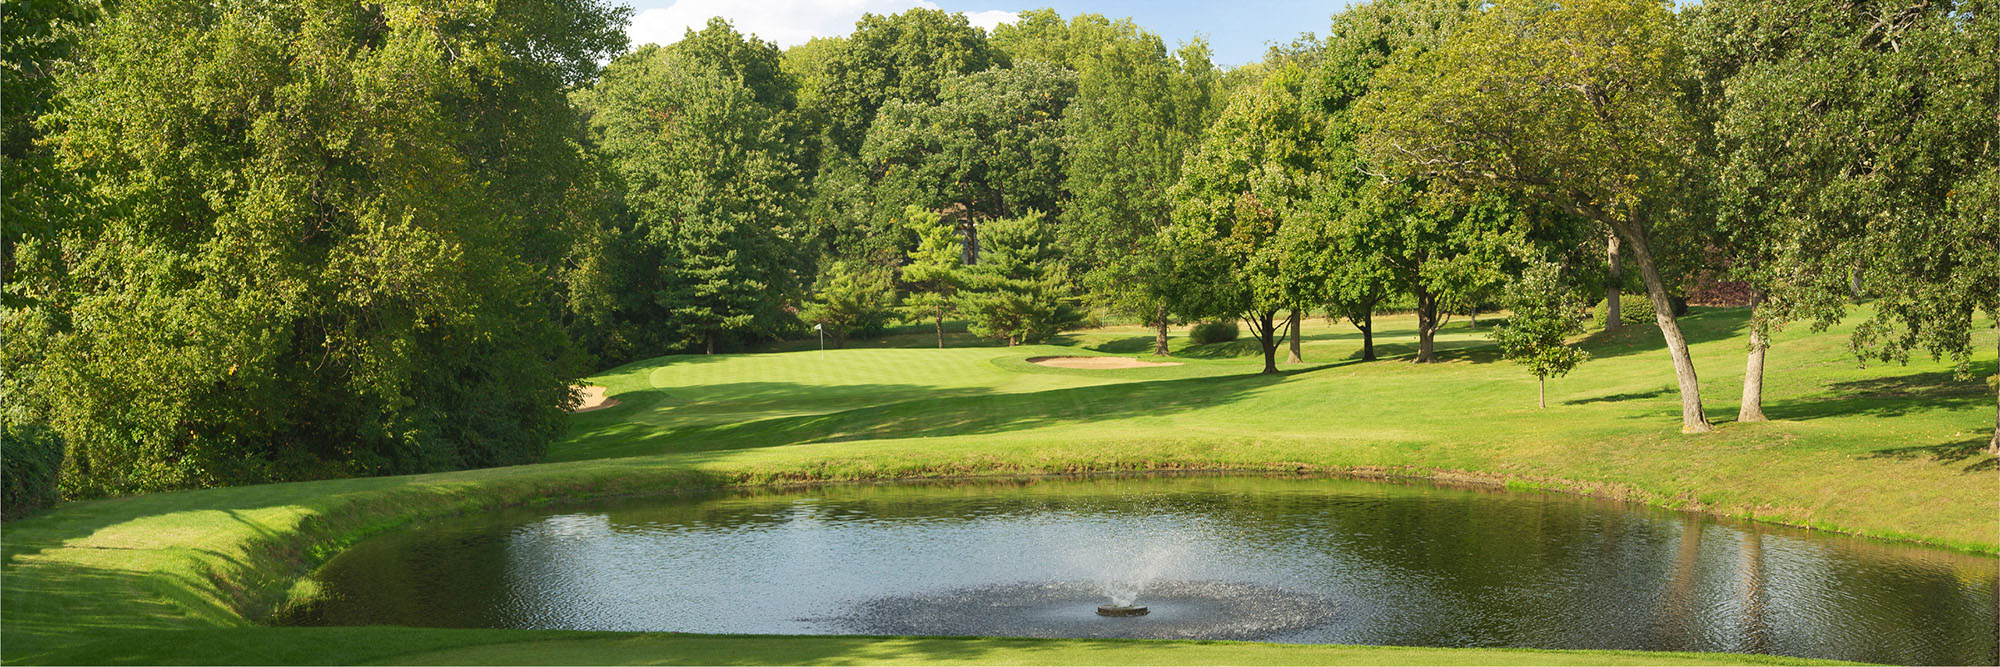 Golf Course Image - Milburn No. 5